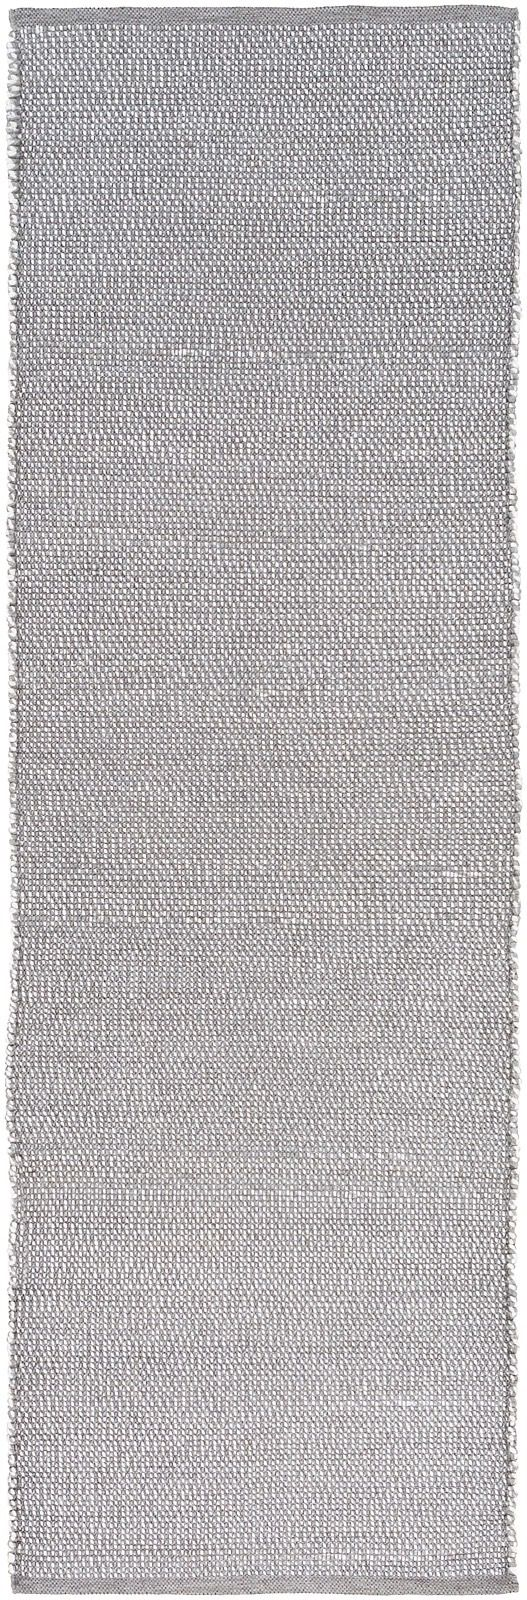 surya pulau contemporary area rug collection